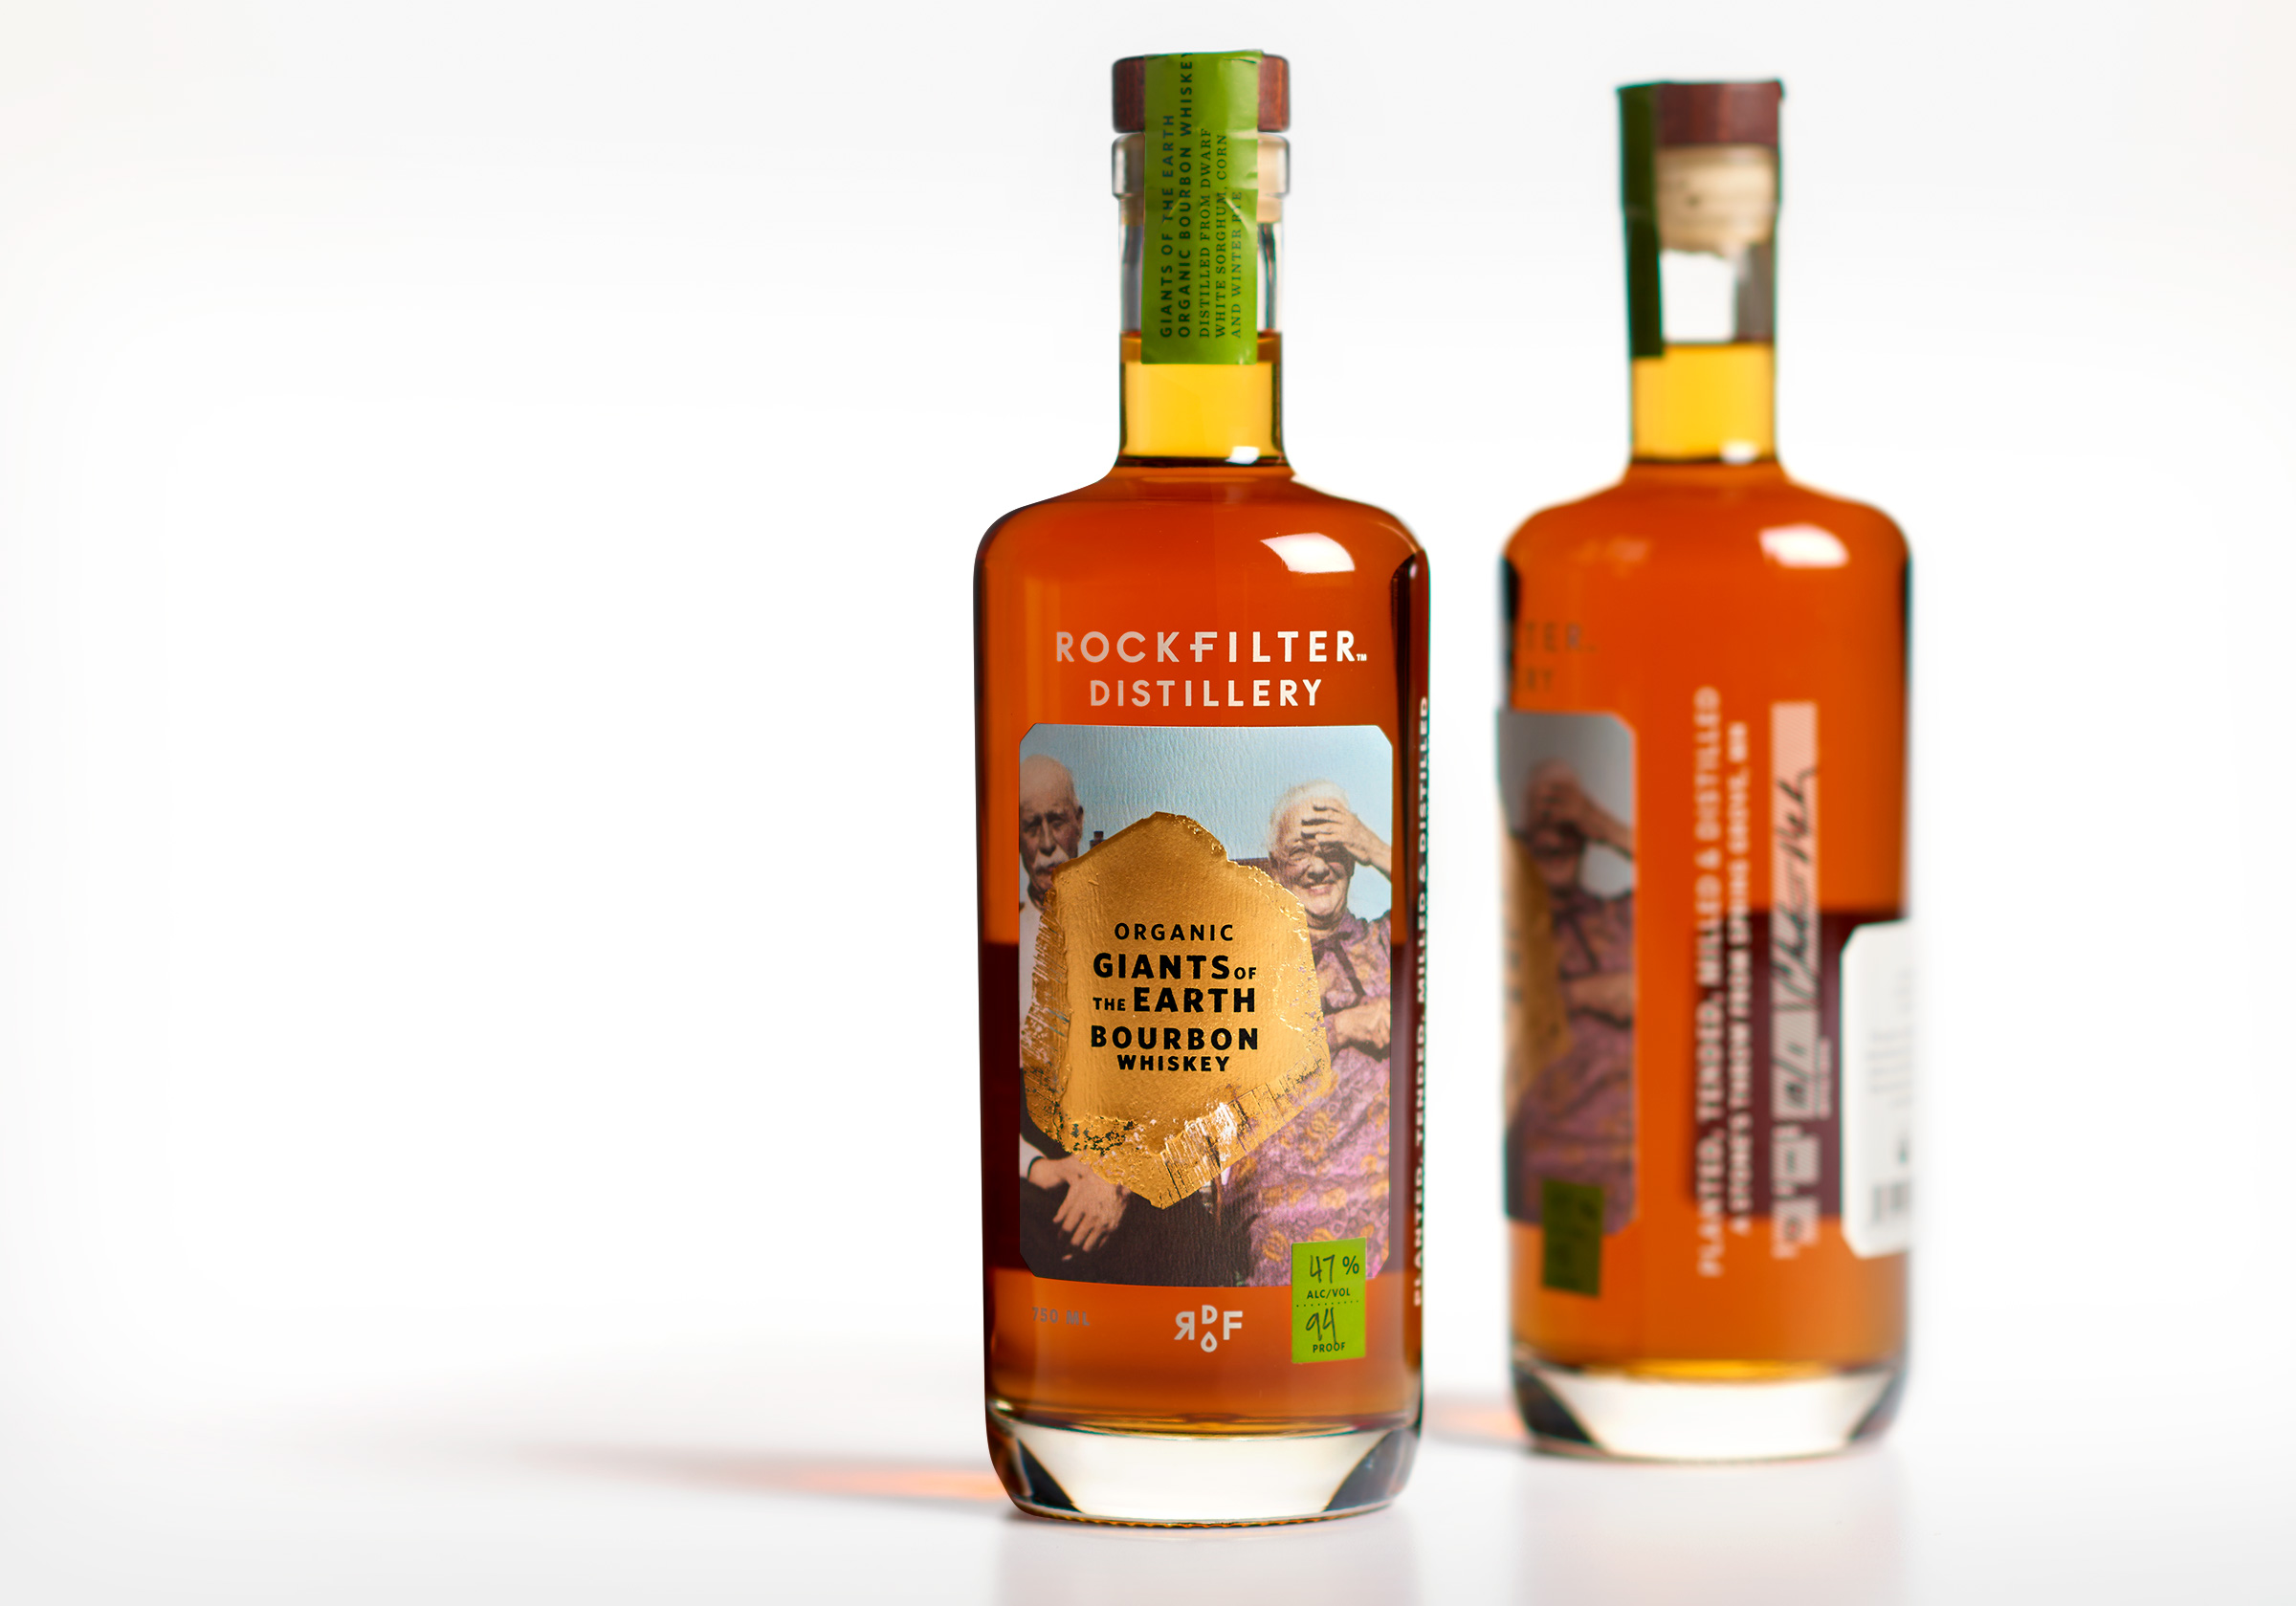 RockFilter Giants of the Earth Bourbon whiskey packaging designed by Abby Haddican and Sarah Forss at Werner Design Werks